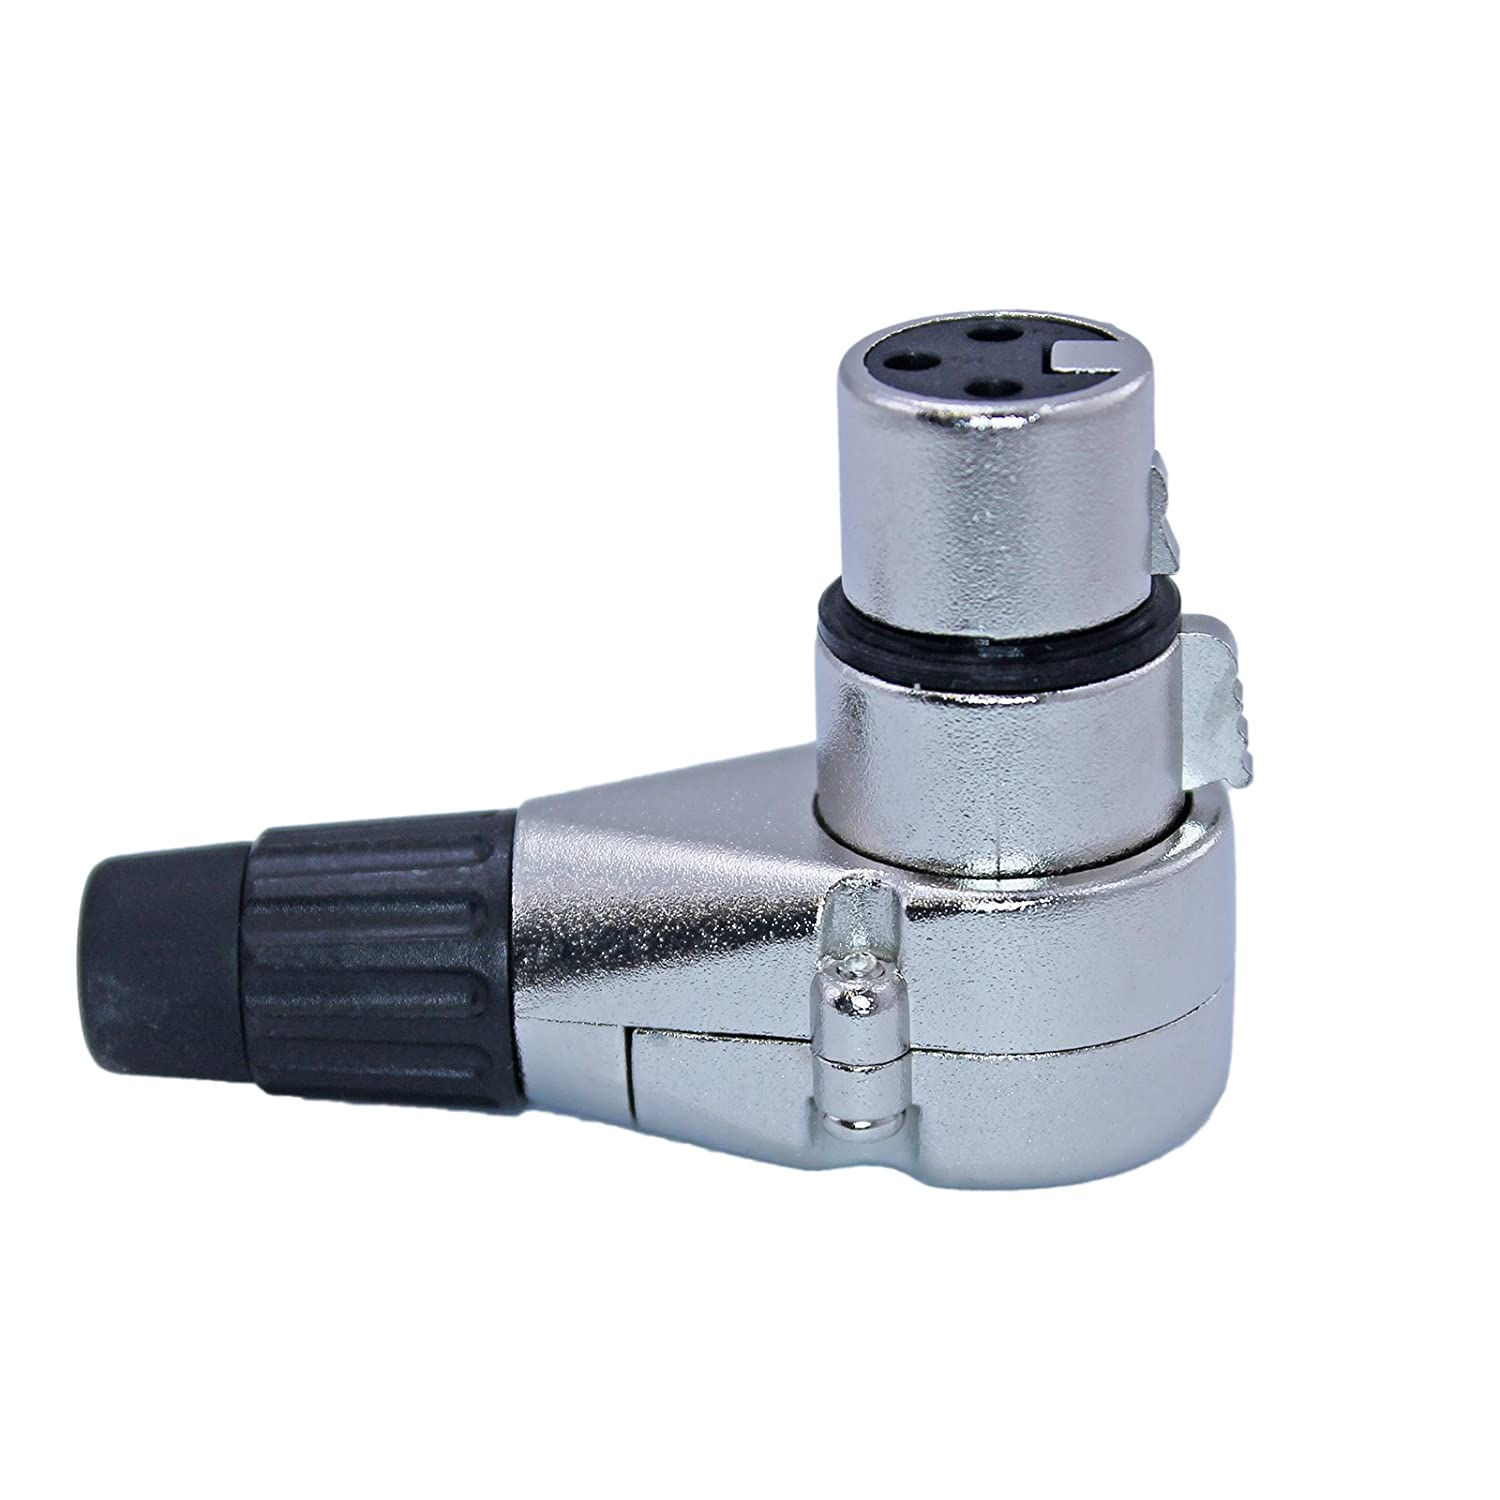 90 Degree Adjustable Classic 3 Pin XLR Clockab Angle High quality new 7 Right Connector -